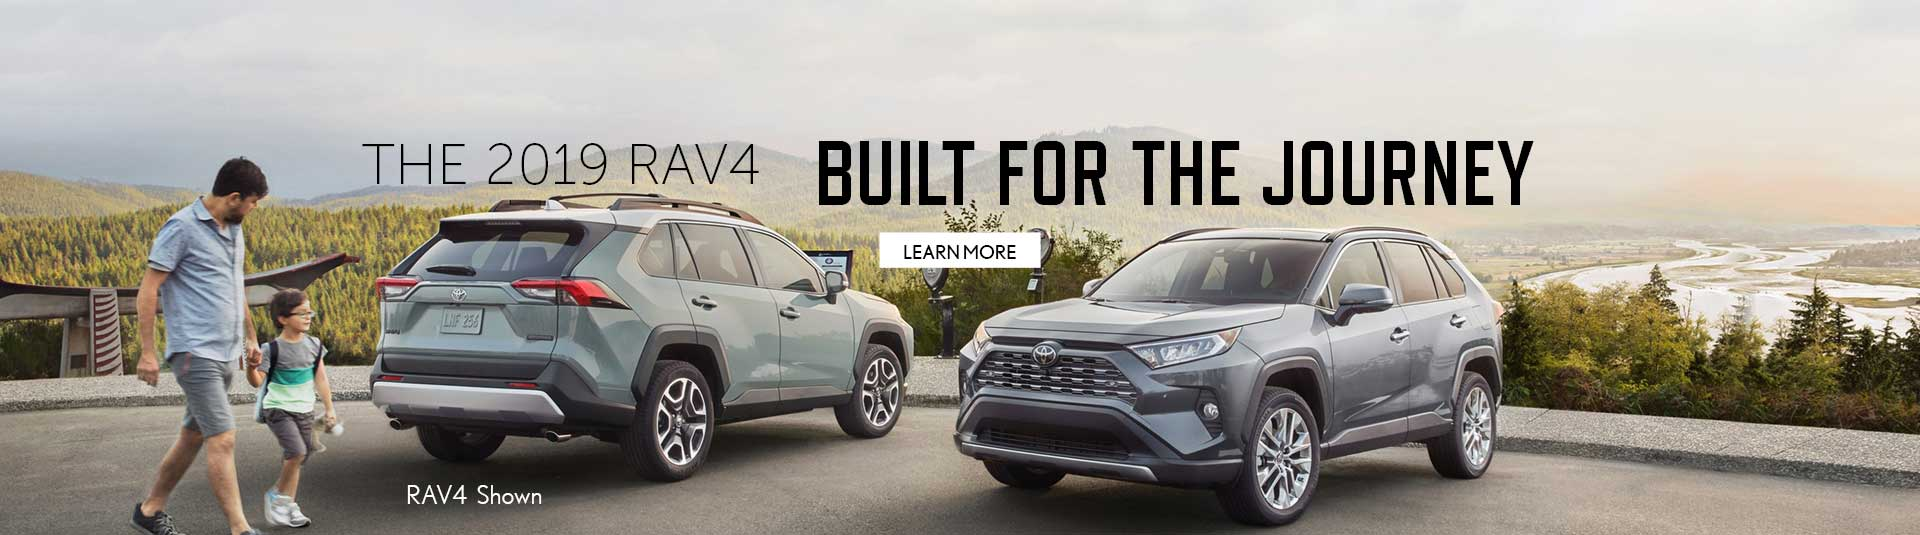 DowntownToyota-RAV4-HERO.jpg